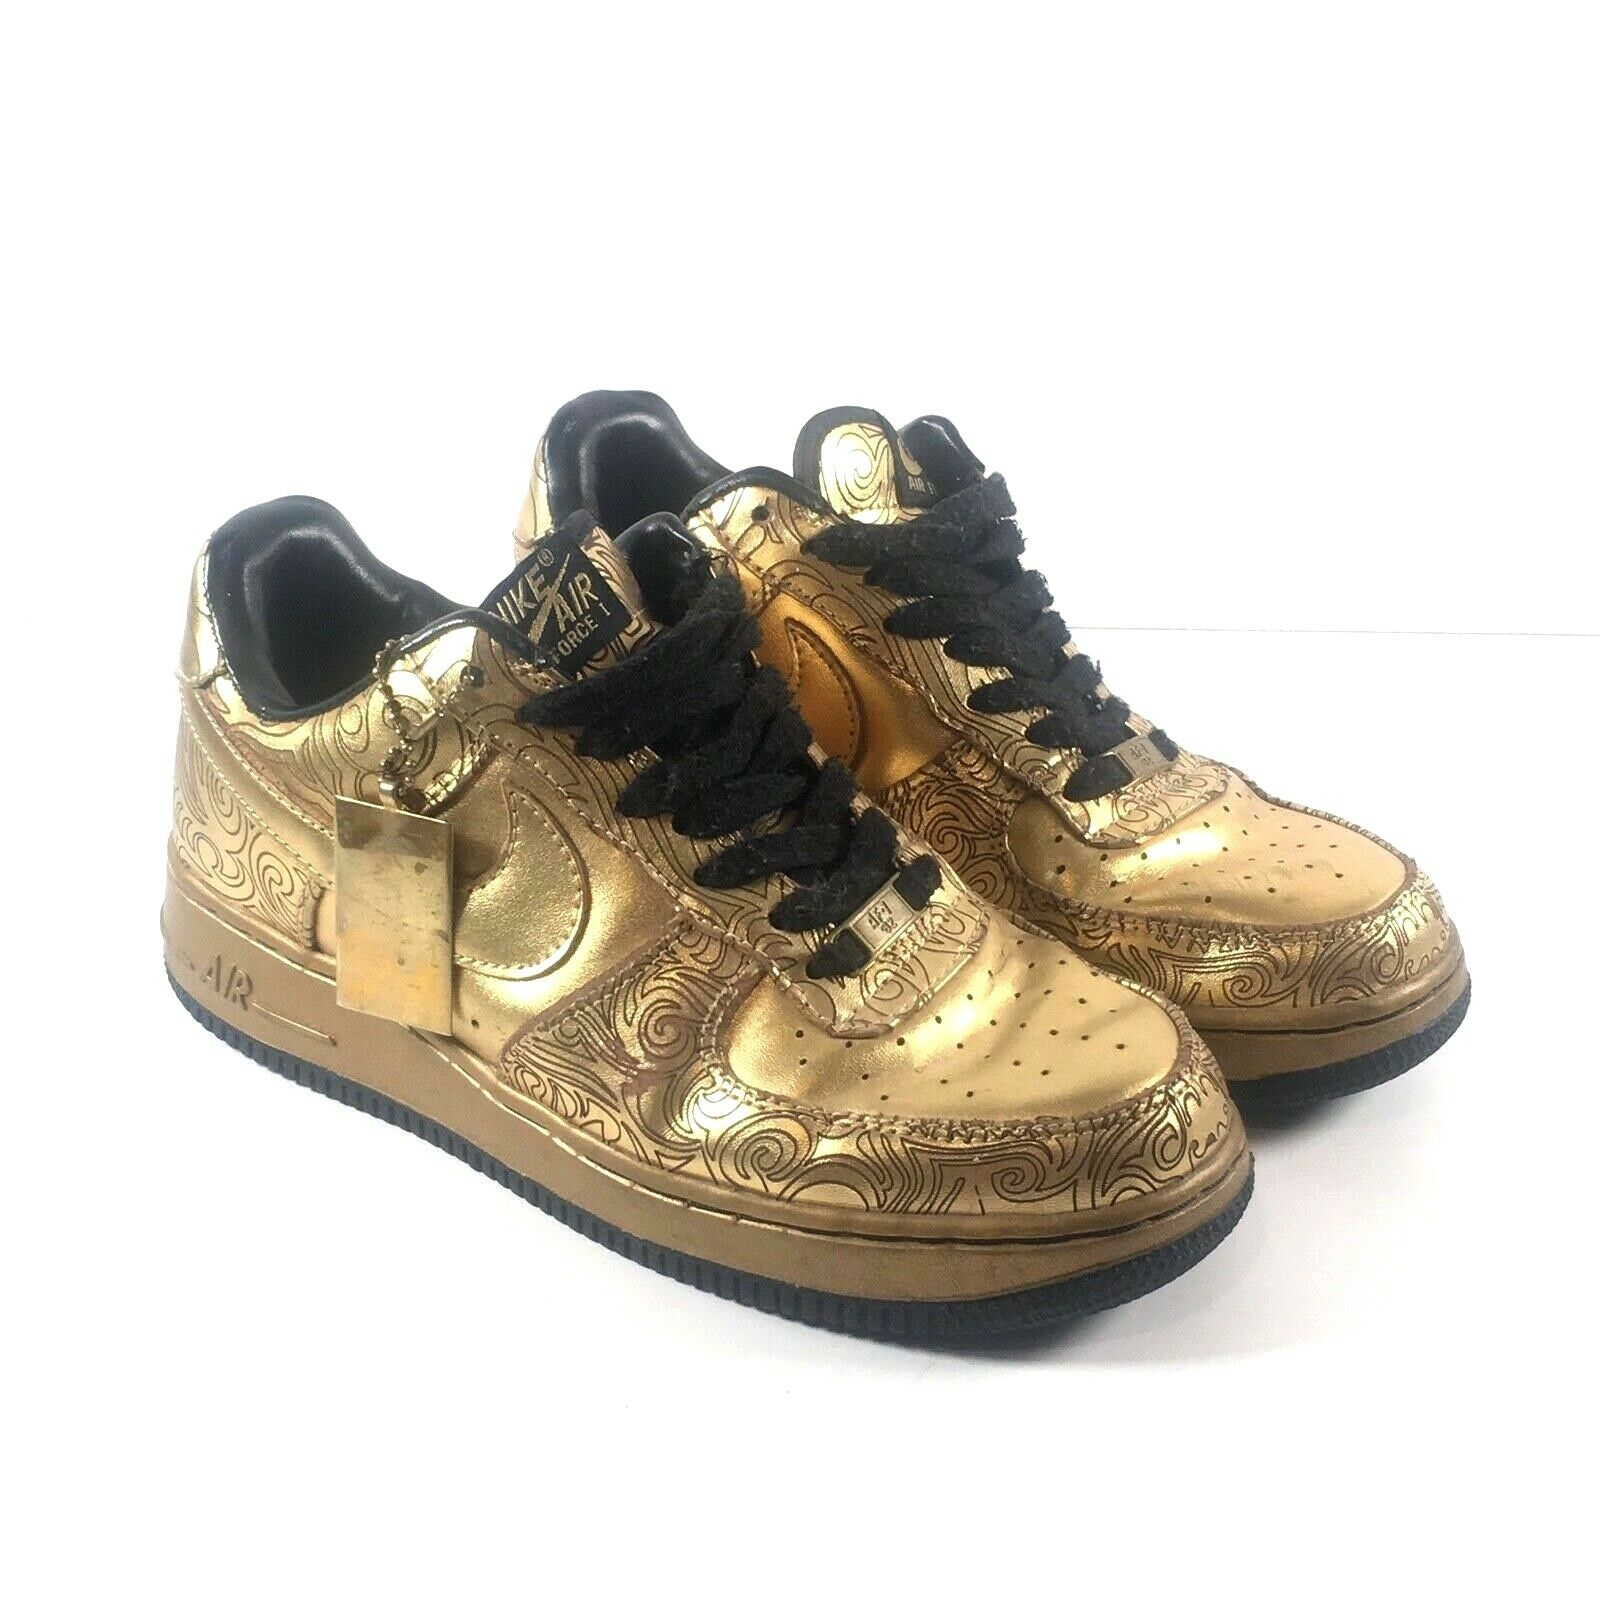 Nike Air Force 1 Low Supreme 339218-771 I O Beijing Closing Ceremony Men's Sz 8